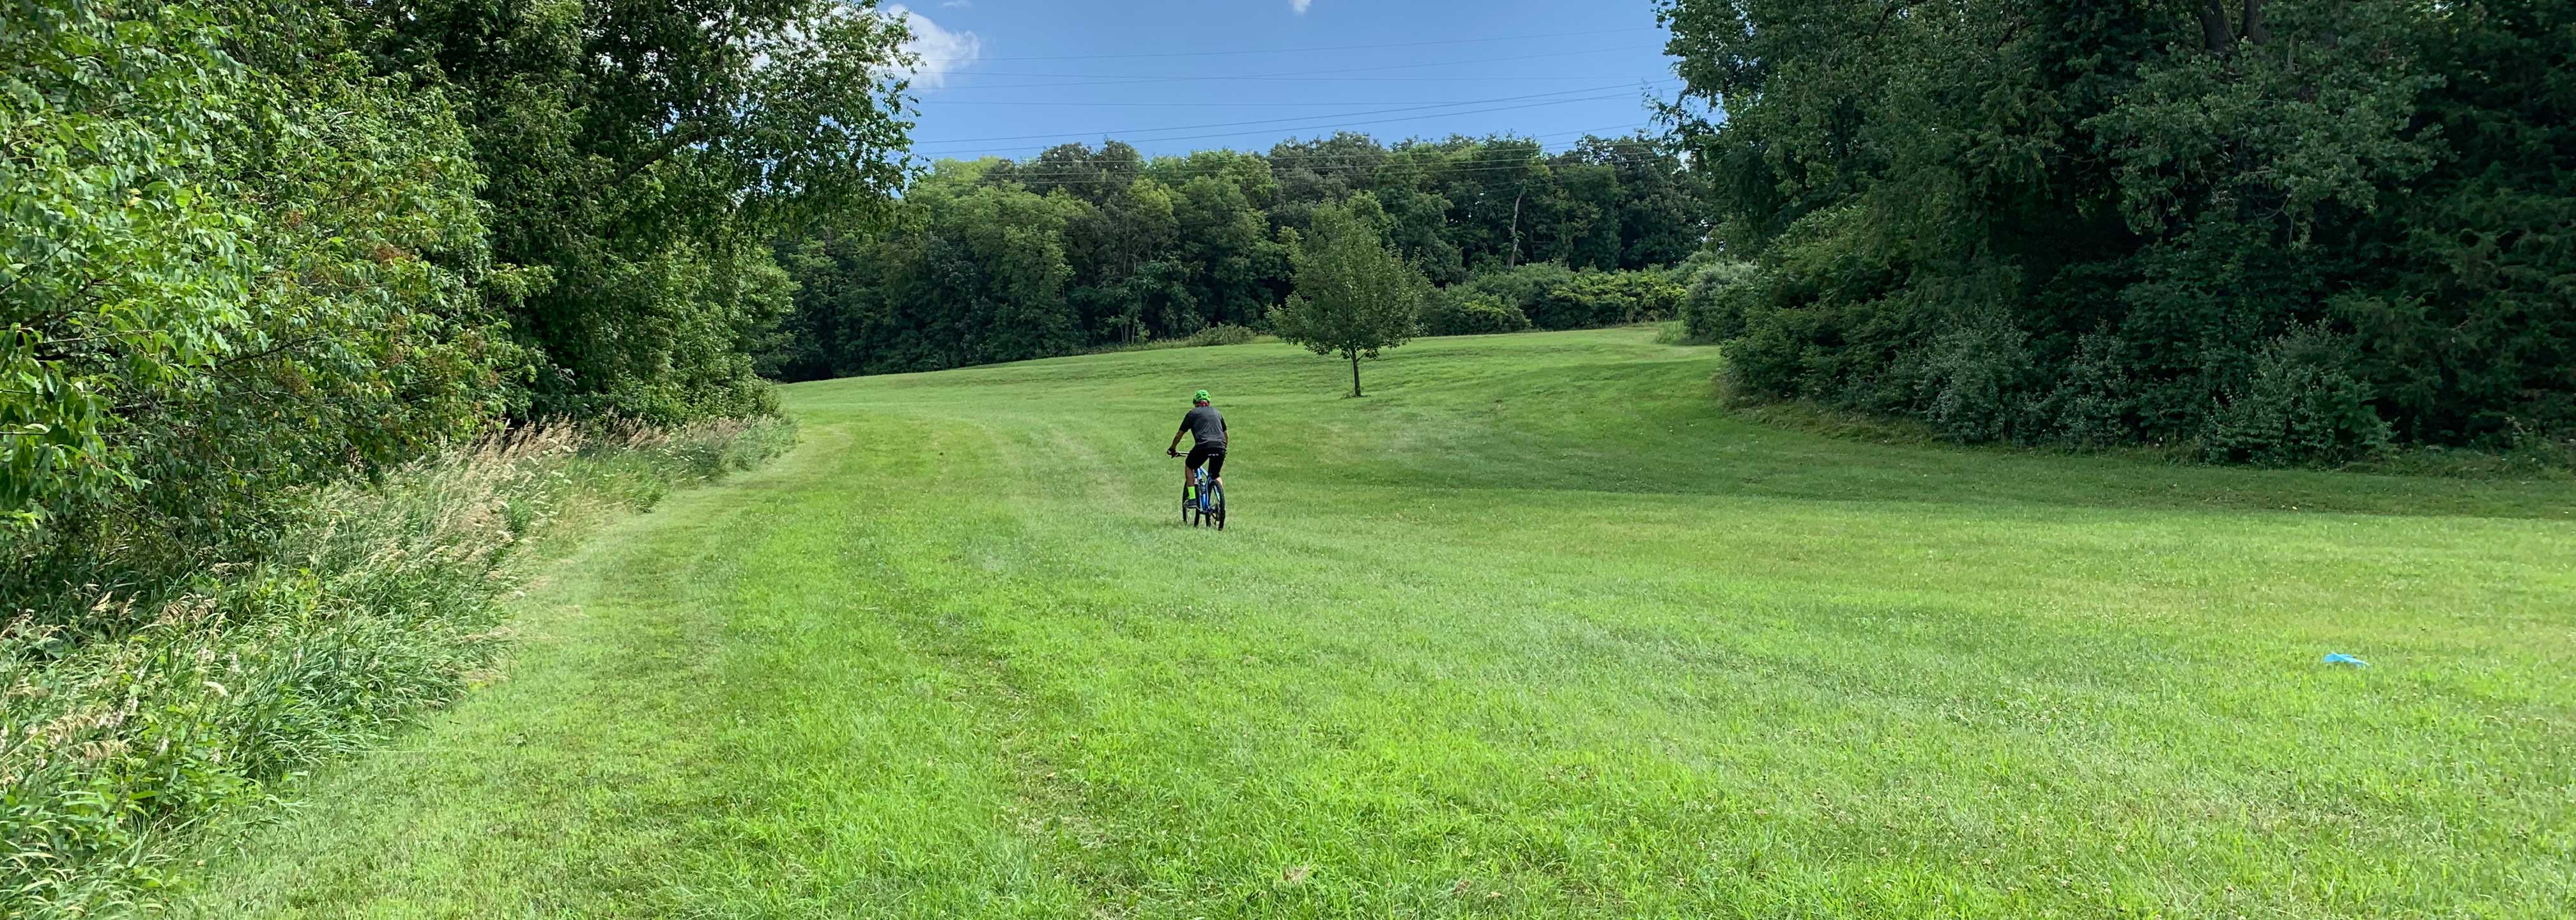 Field, mountain bike, future trail, trees, greenery